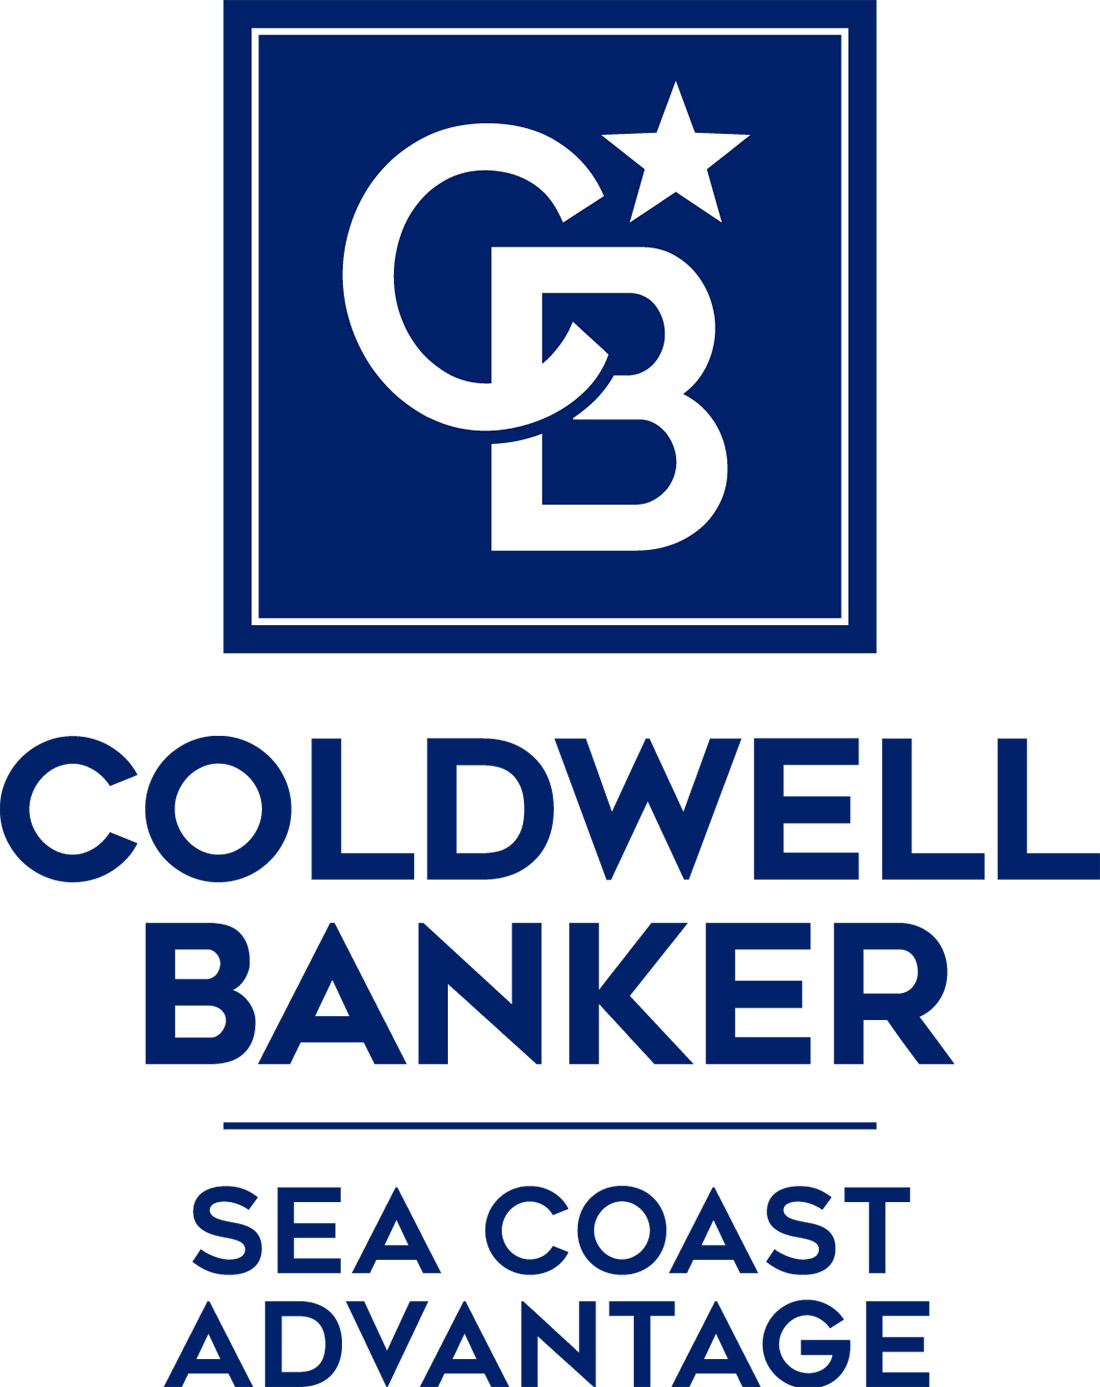 Jonathan Ennis - Coldwell Banker Sea Coast Advantage Realty